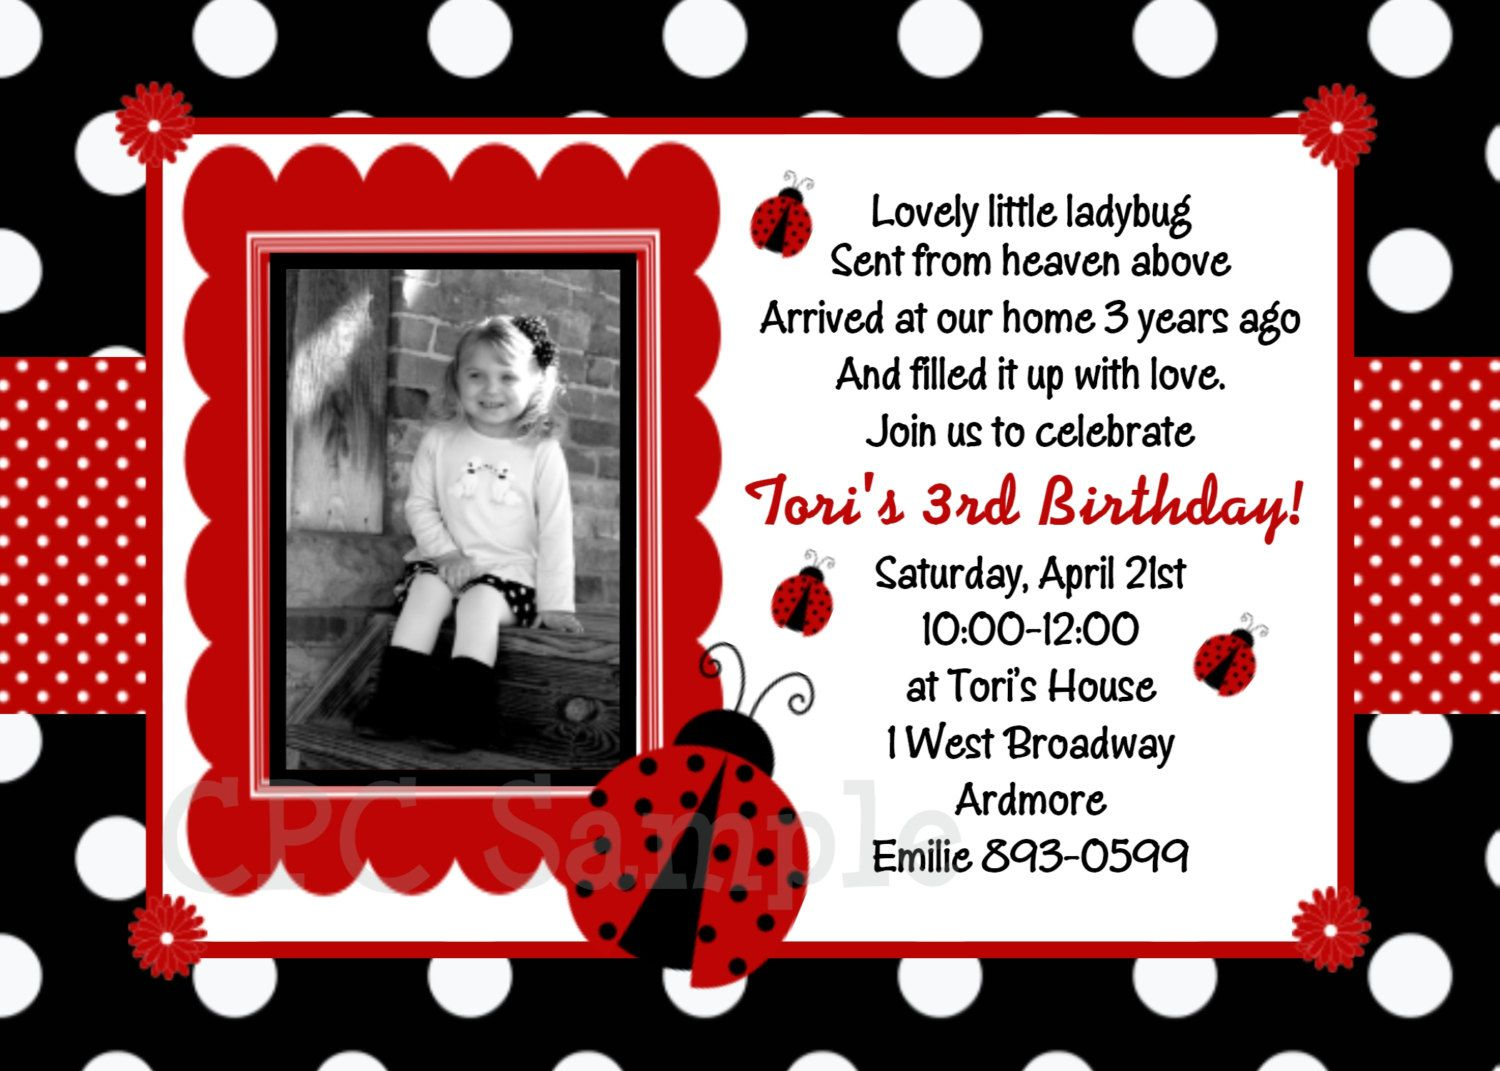 Ladybug Birthday Invitations Free Template